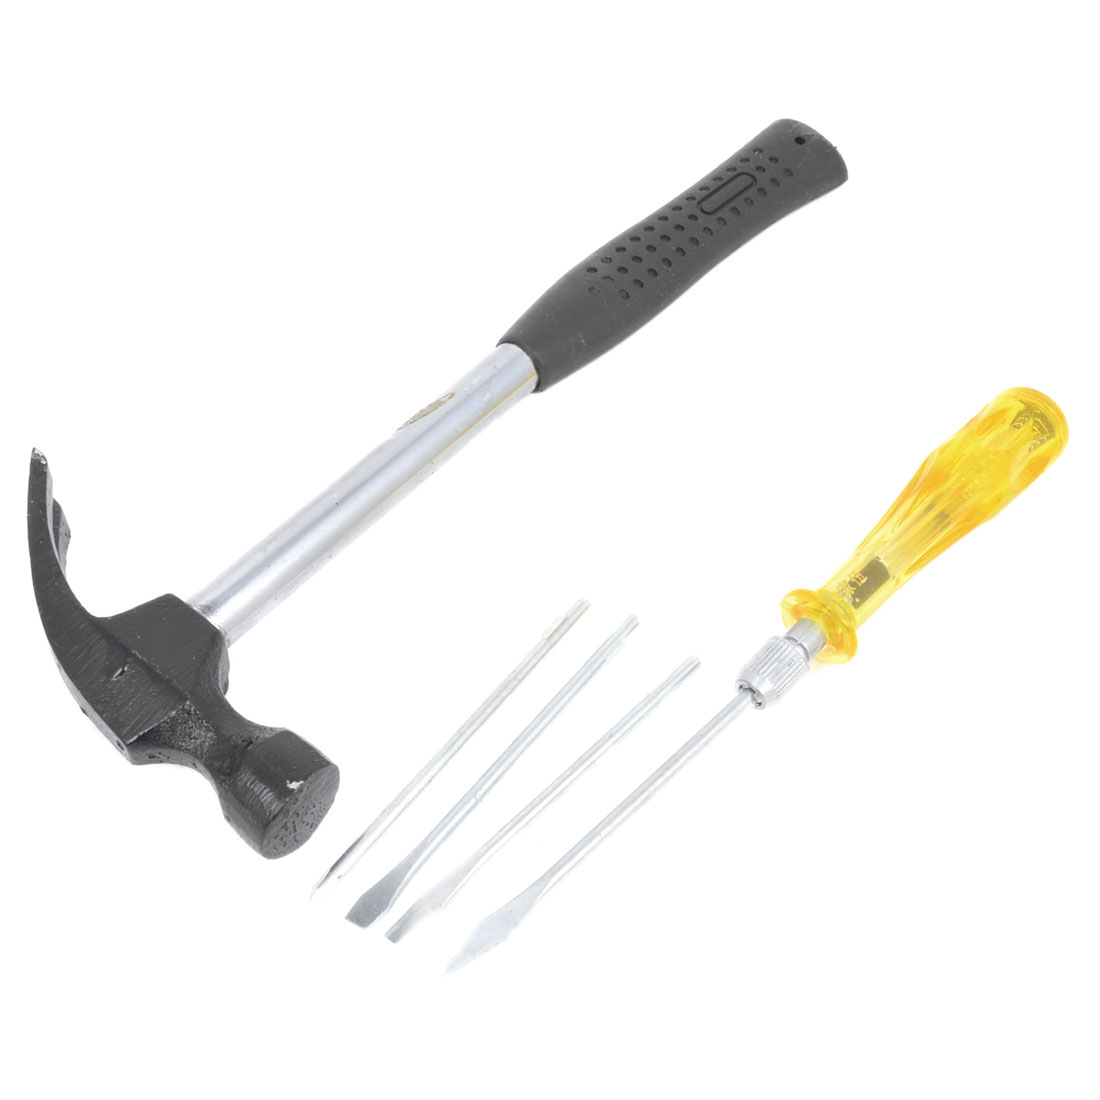 2 in 1 Plastic Nonslip Handle Slotted Phillips Screwdriver Hammer Hand Tool Set